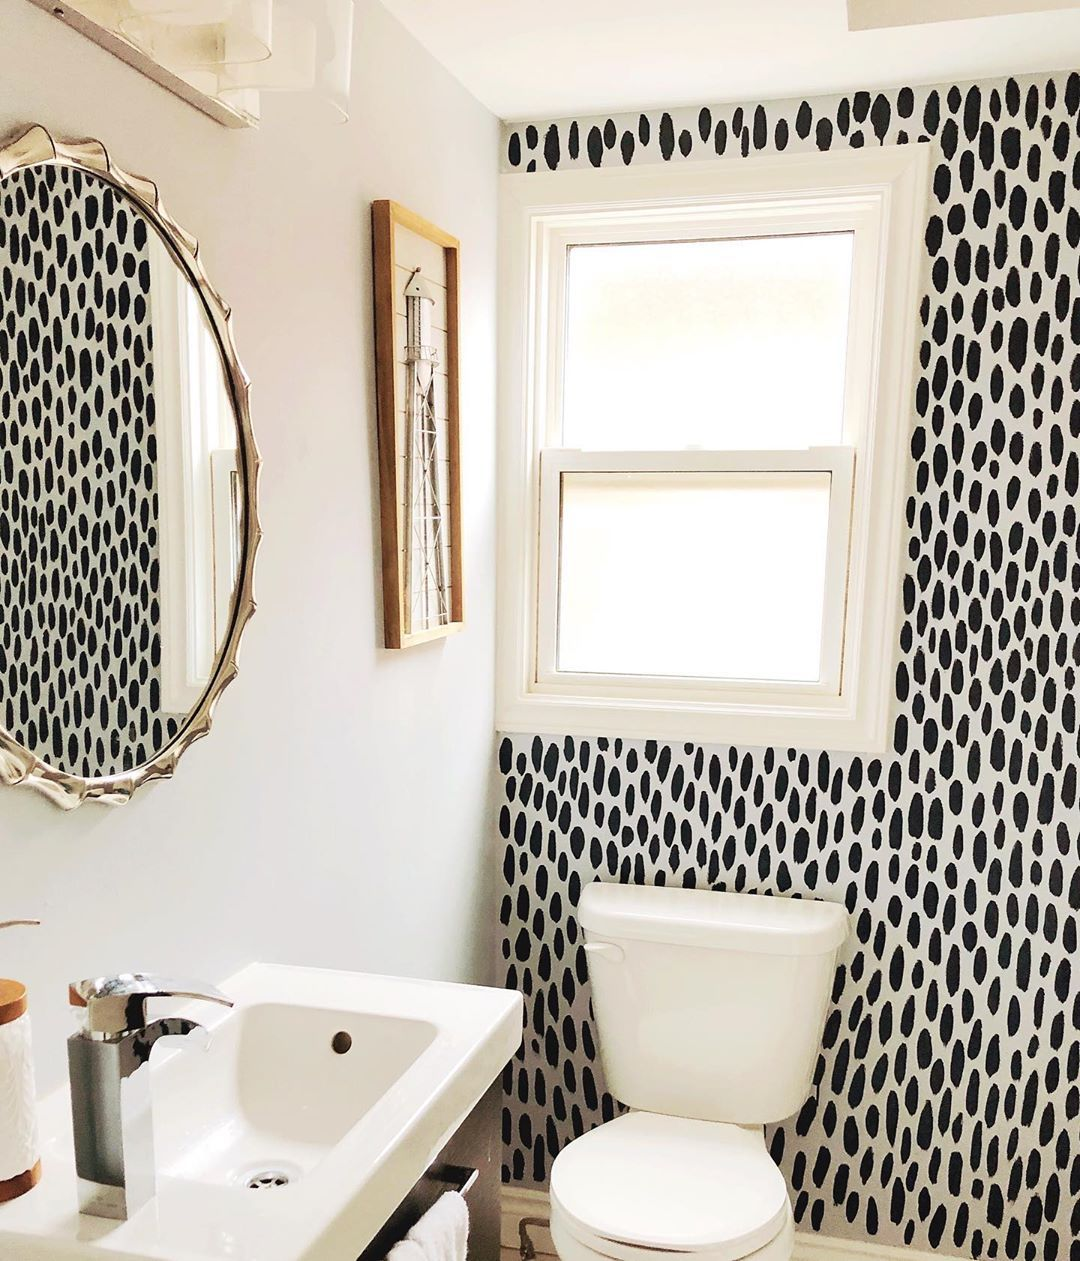 Diy Bathroom Accent Wall Swipe To See The Before Cost 0 To Complete This One Hour Proj Bathroom Accent Wall Small Bathroom Decor Accent Wall Bedroom Paint